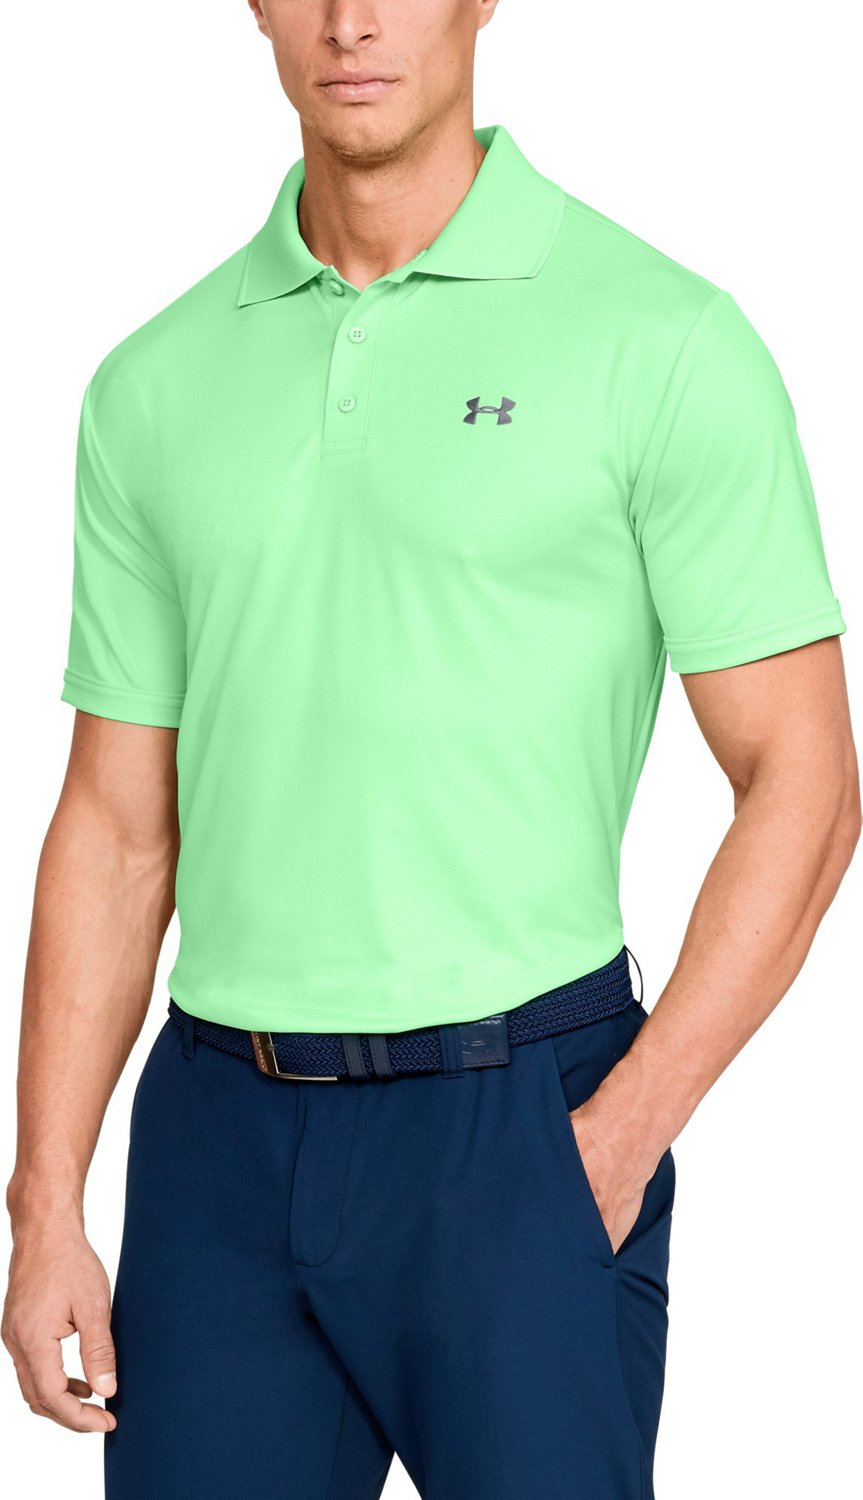 Golf Shirts Mens Golf Shirts Polo Shirts Academy